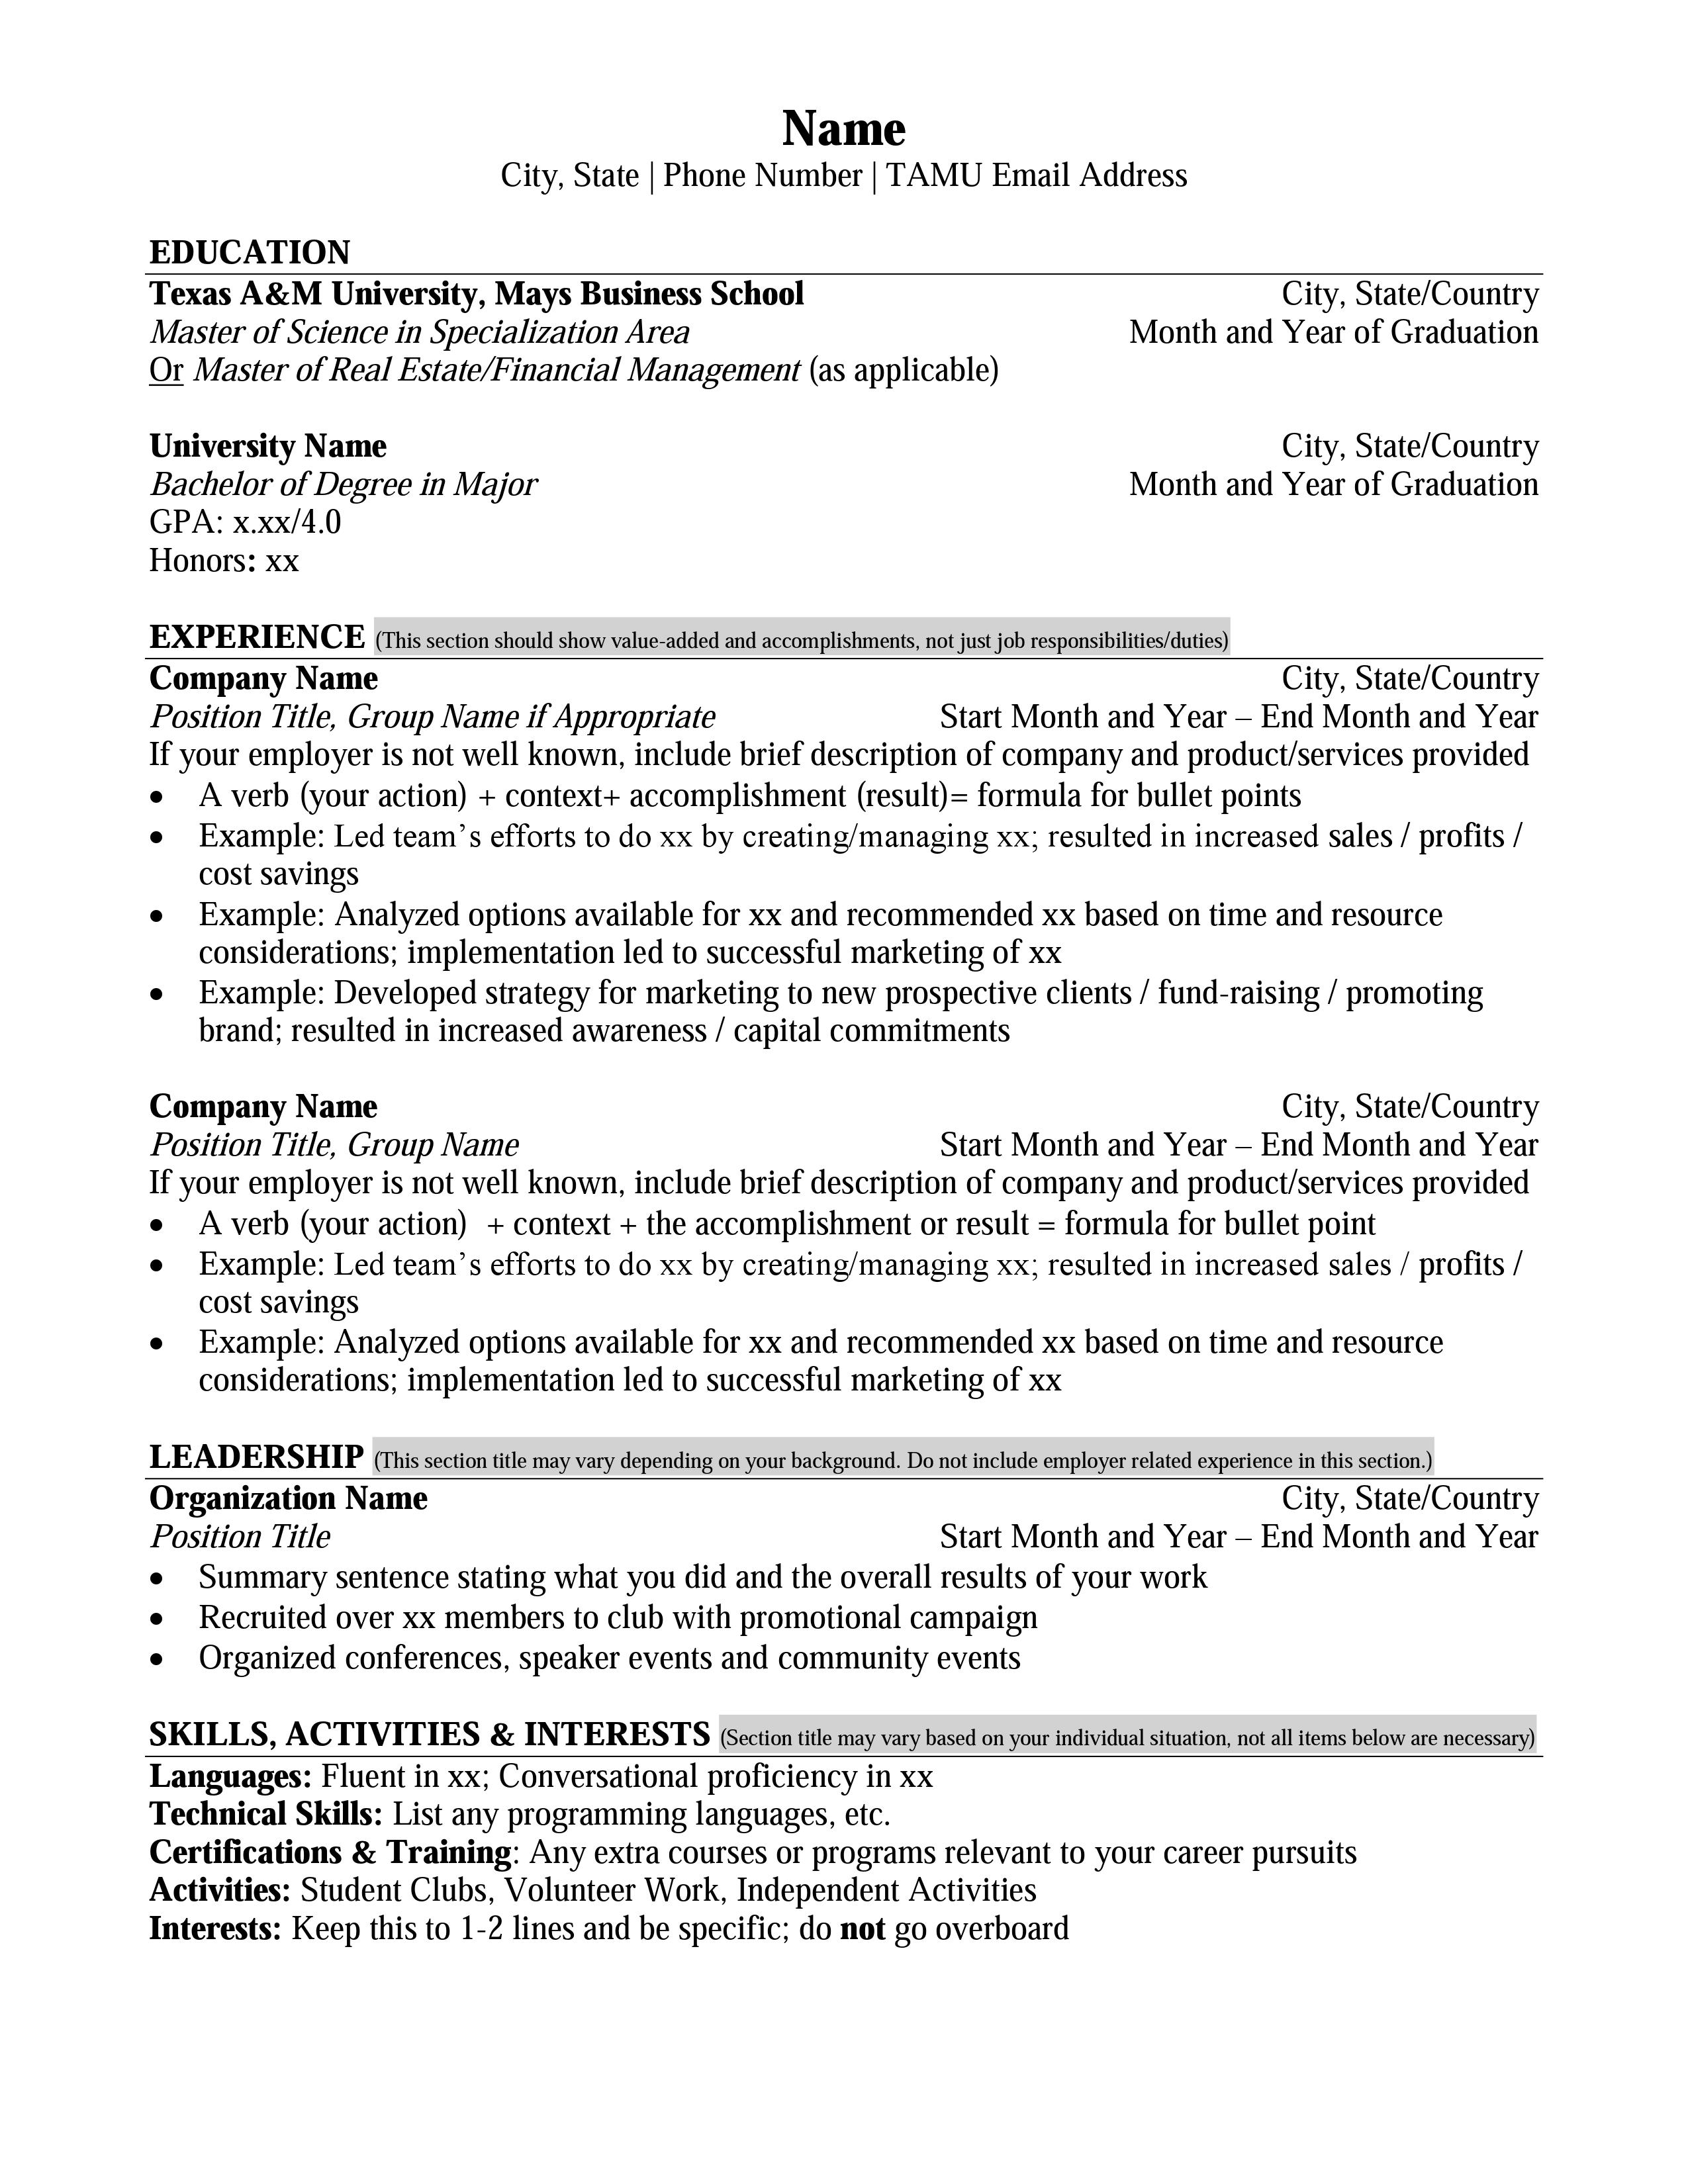 Market Research Interviewer Resume Mays Masters Resume Format Career Management Center